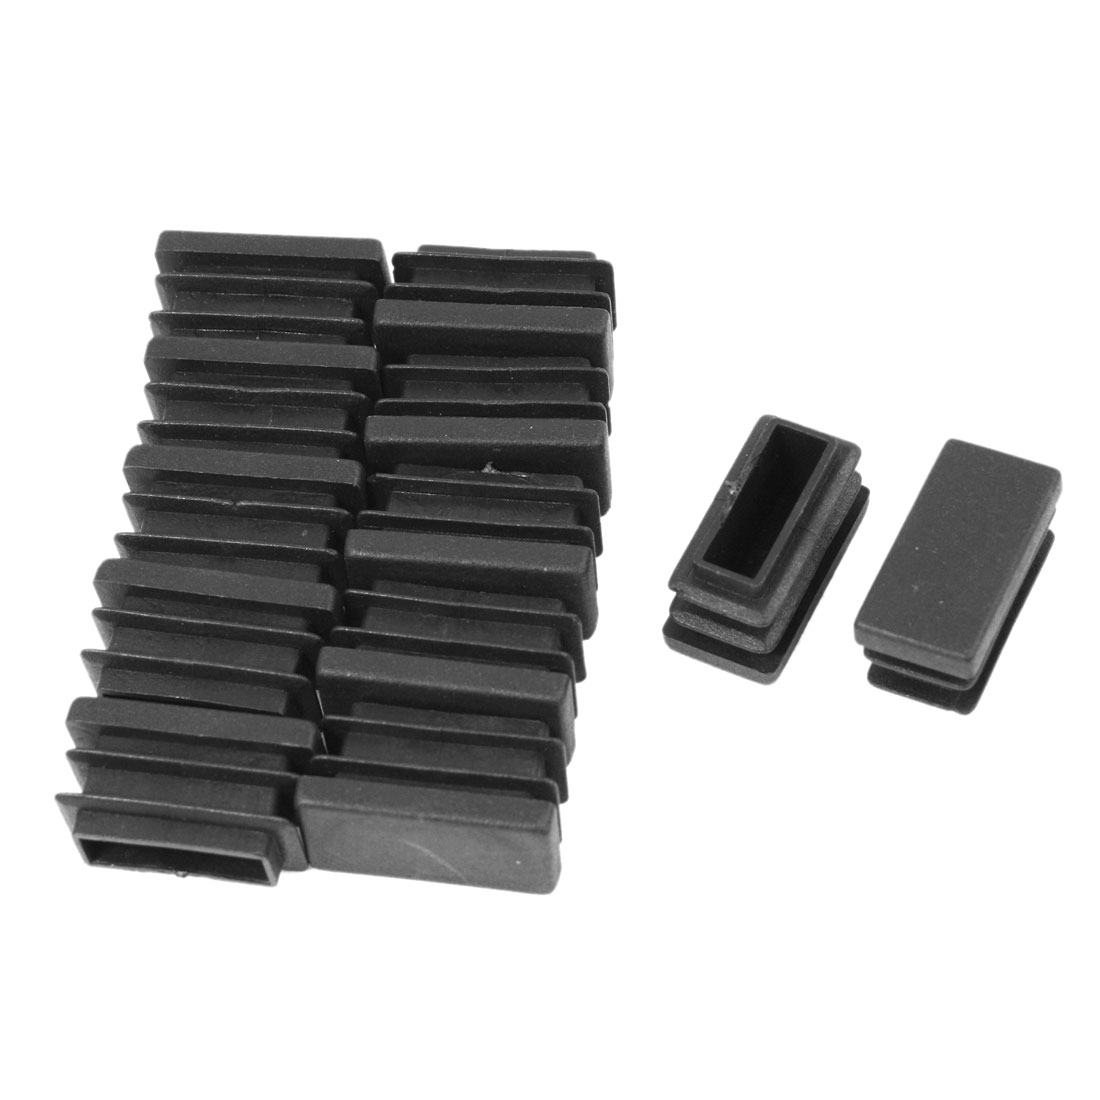 12 Pcs 13mm x 26mm Plastic Blanking End Caps Rectangle Tubing Tube Pipe Insert